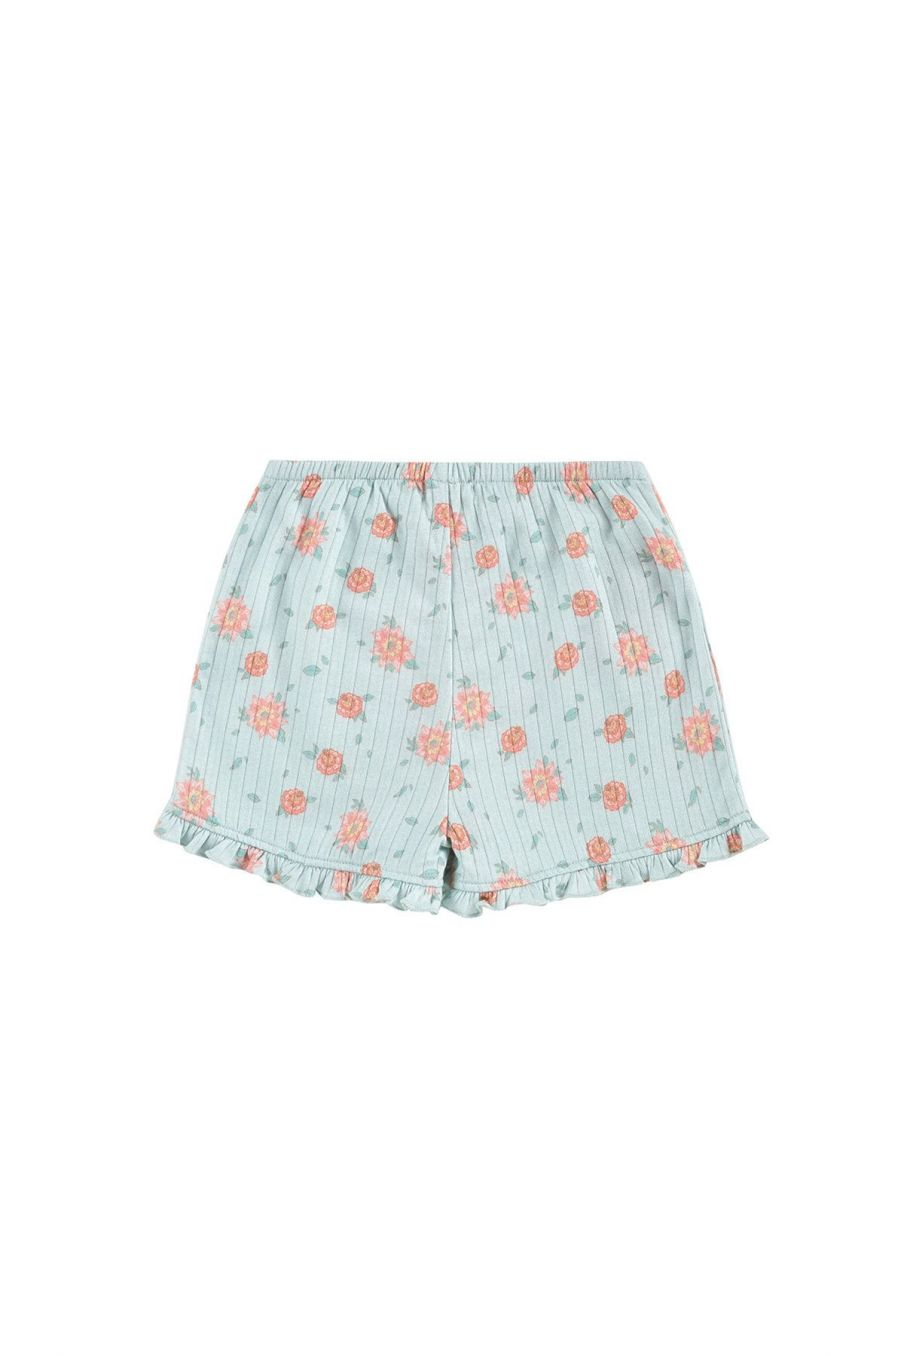 boheme chic vintage short fille anchi vintage blue flowers